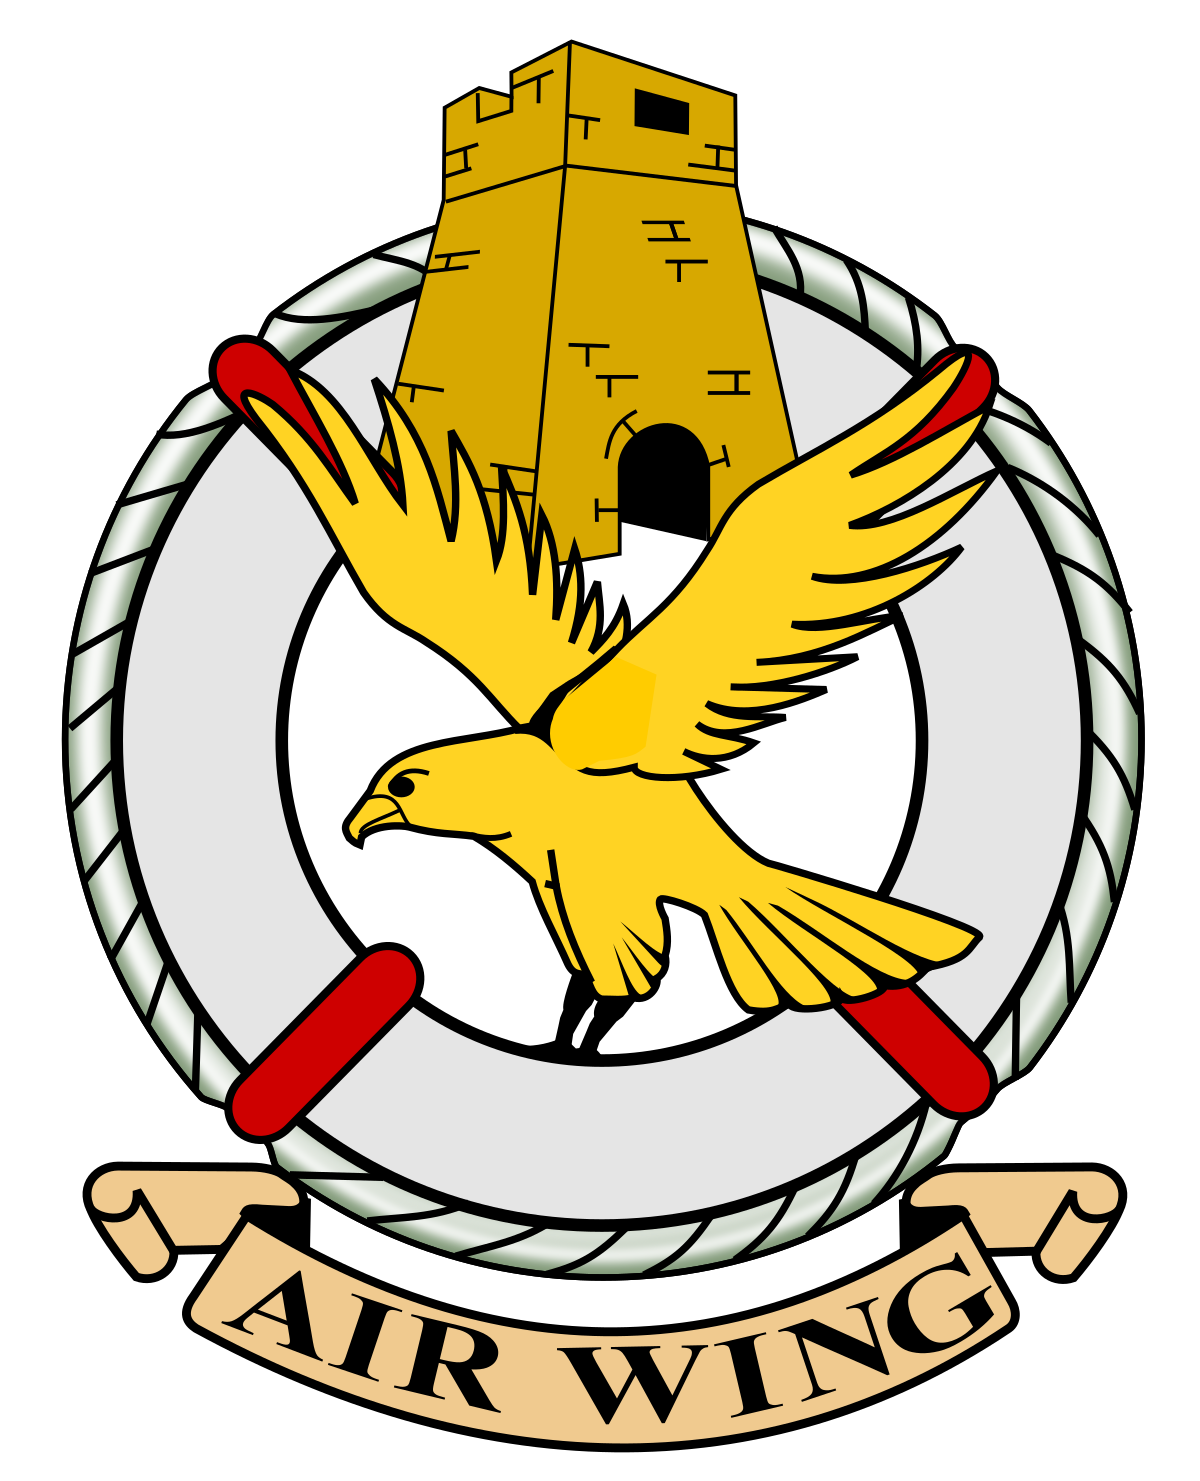 Air malta logo clipart picture black and white library Air Wing of the Armed Forces of Malta - Wikipedia picture black and white library